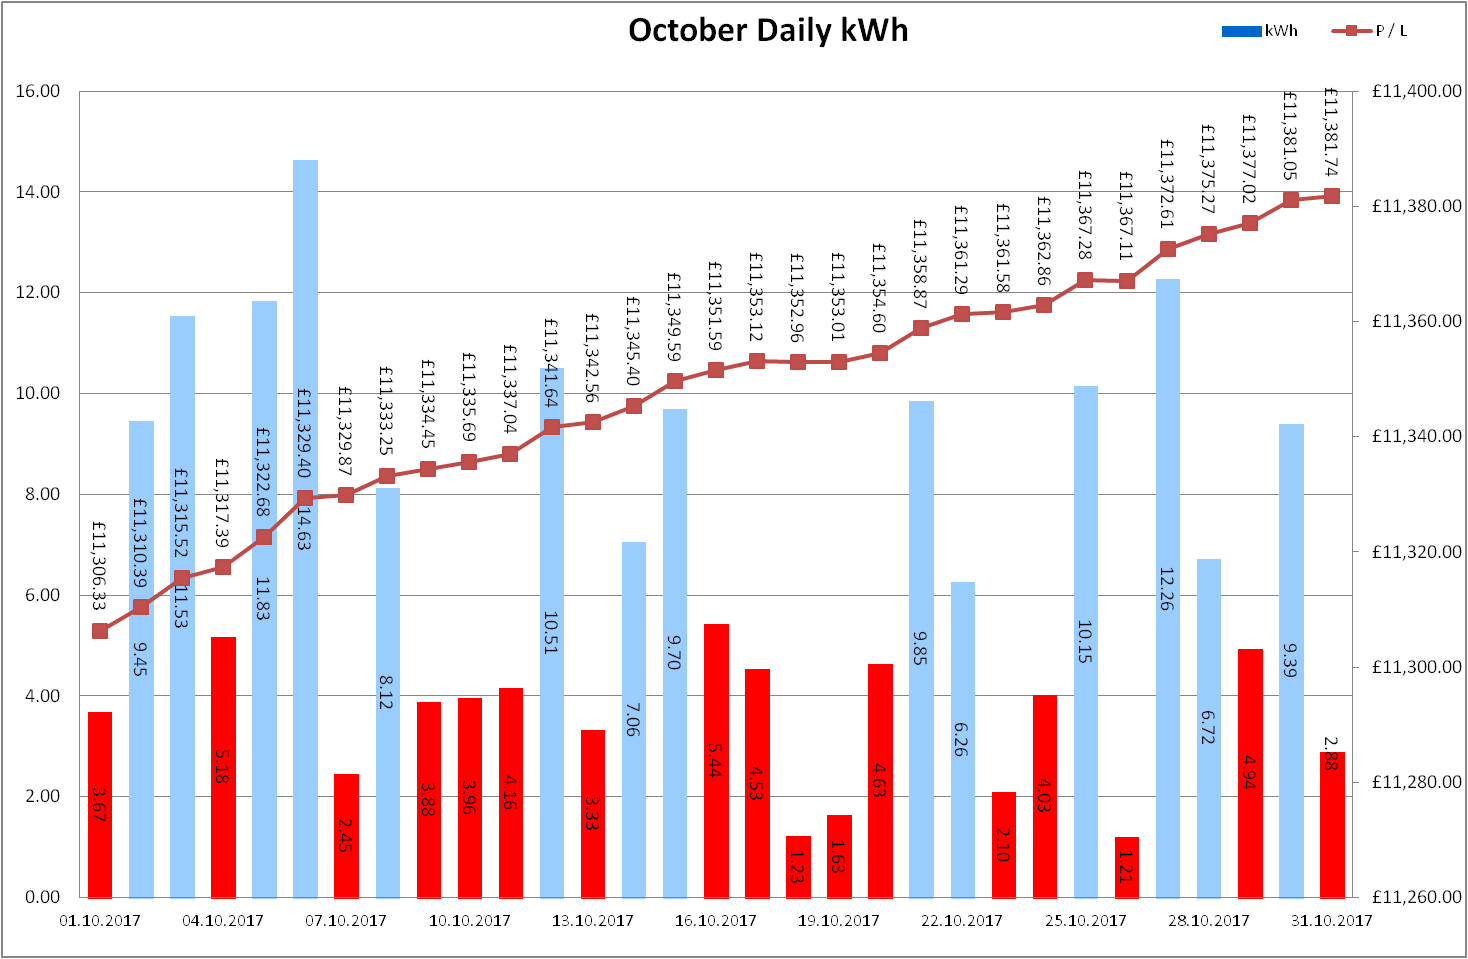 Total Output for October 2017